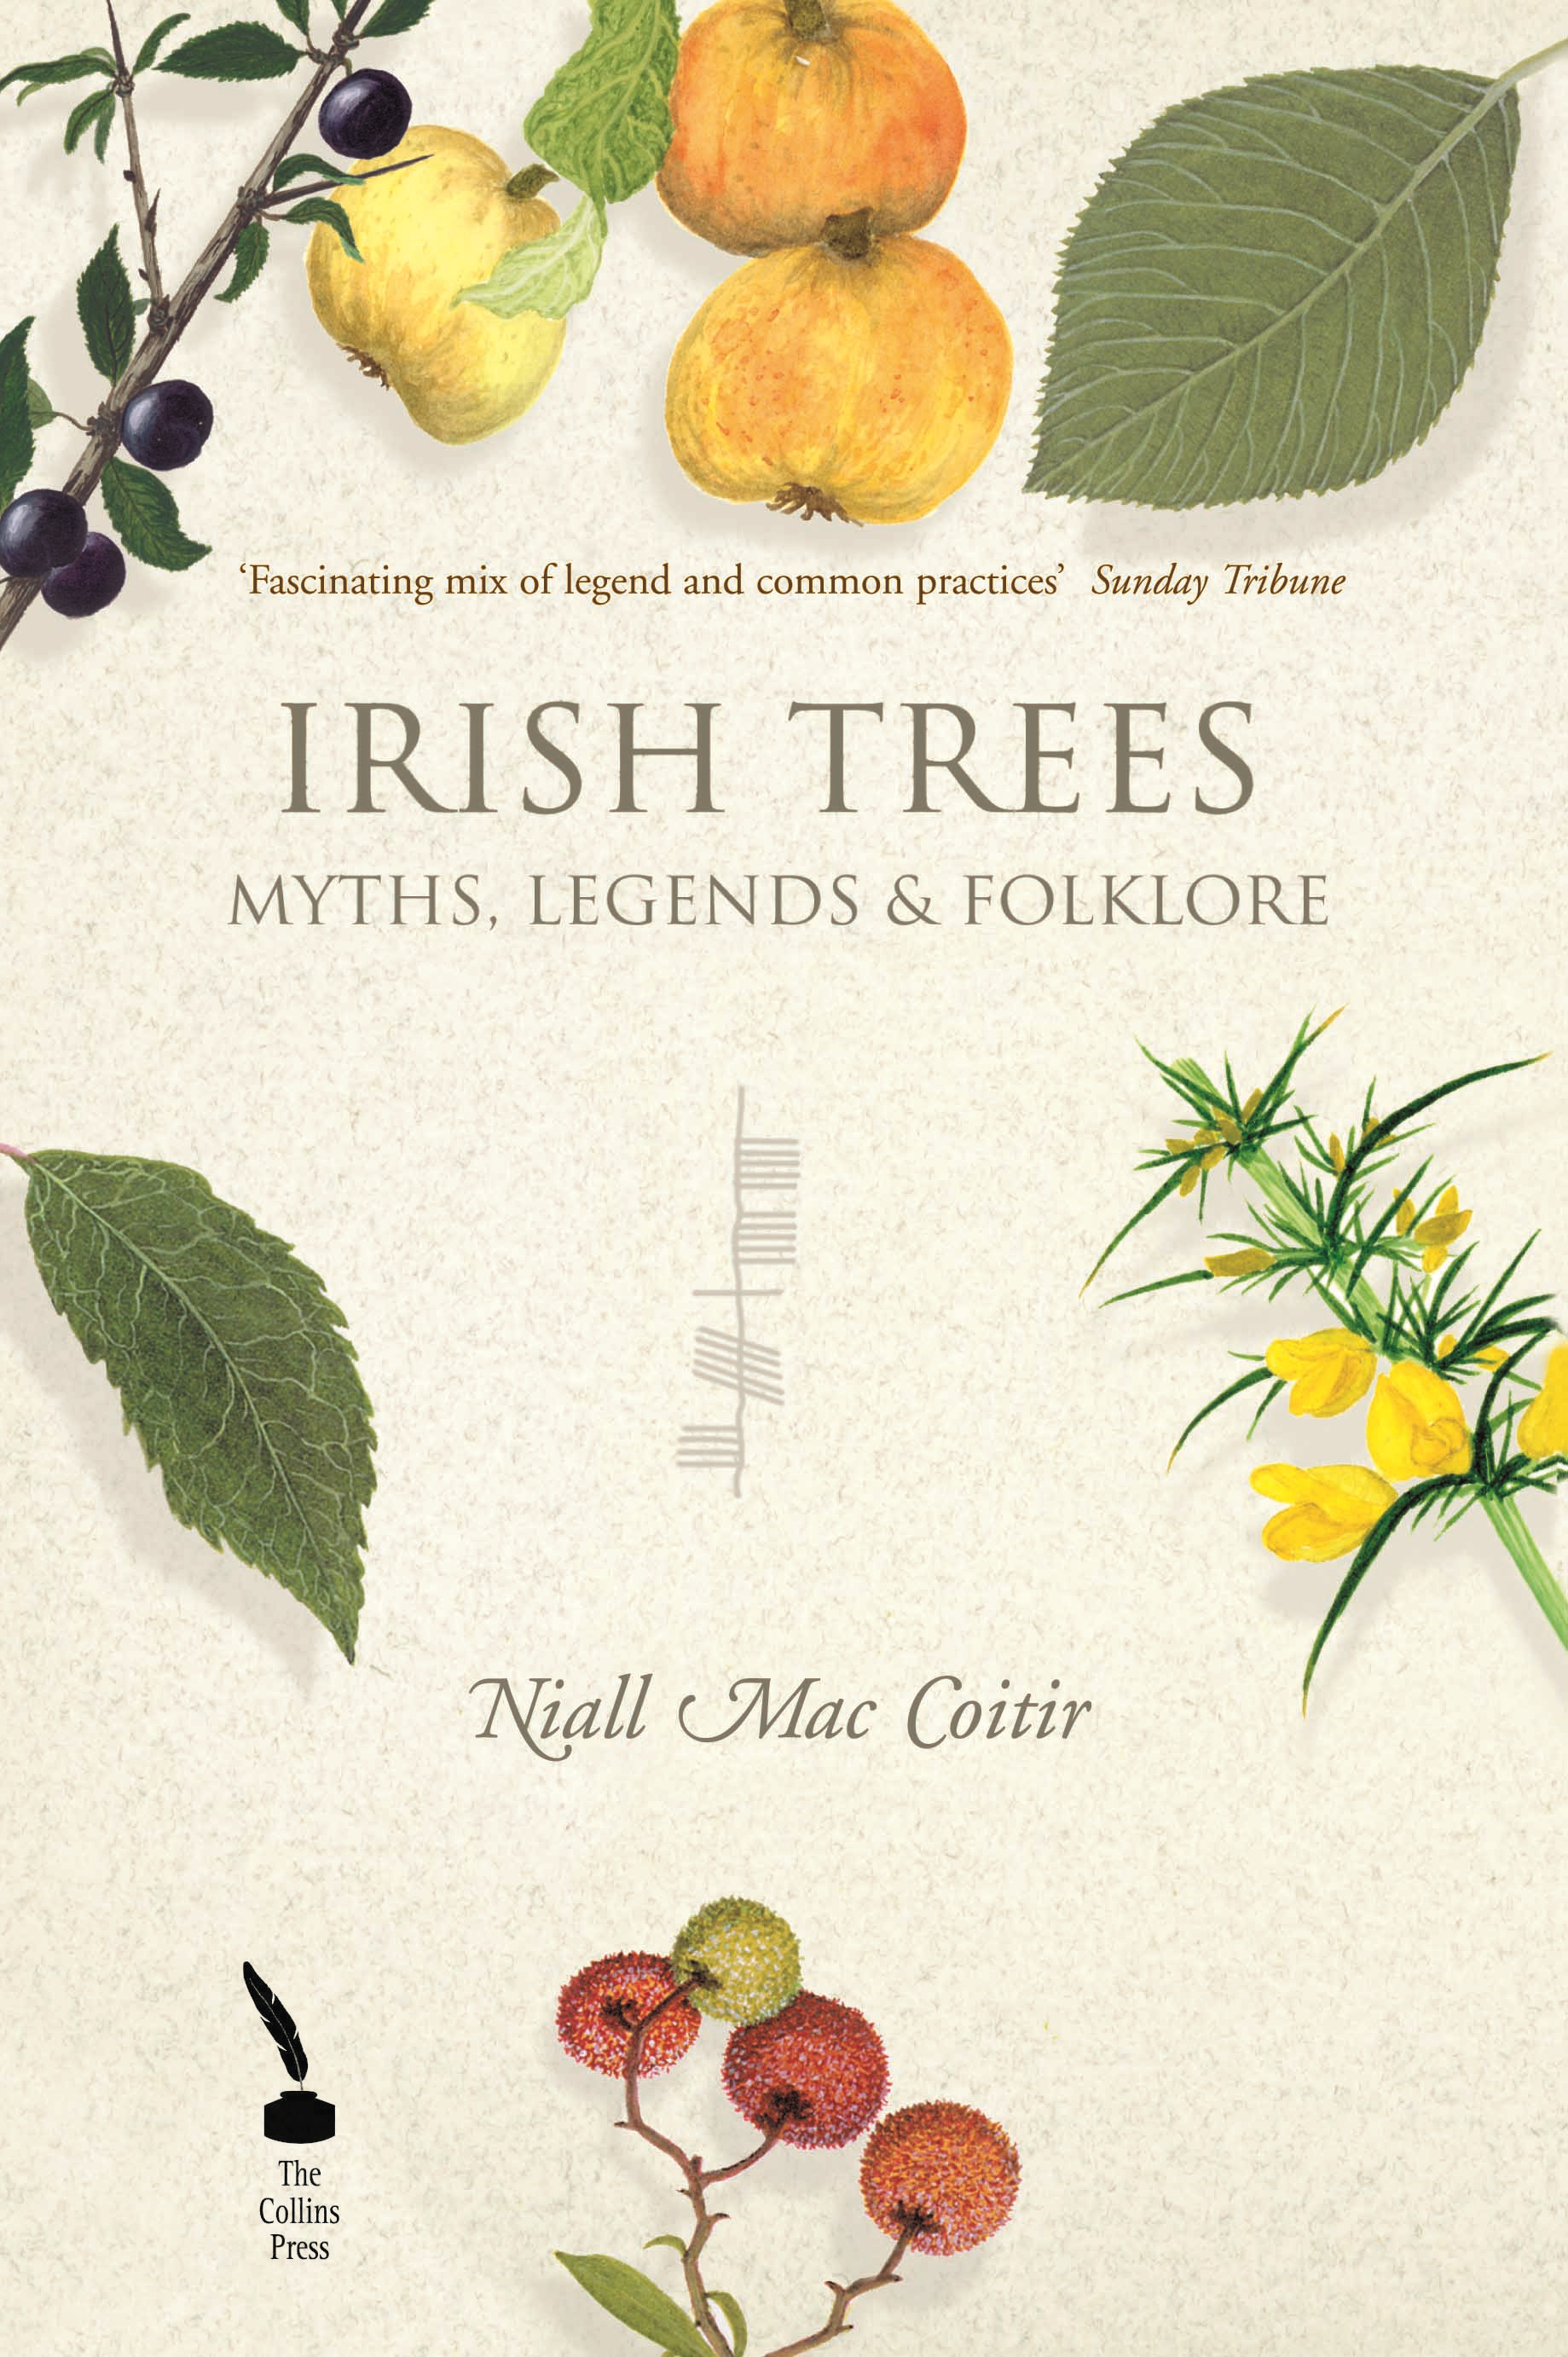 Irish Trees – Myths, Legends & Folklore By: Niall Mac Coitir